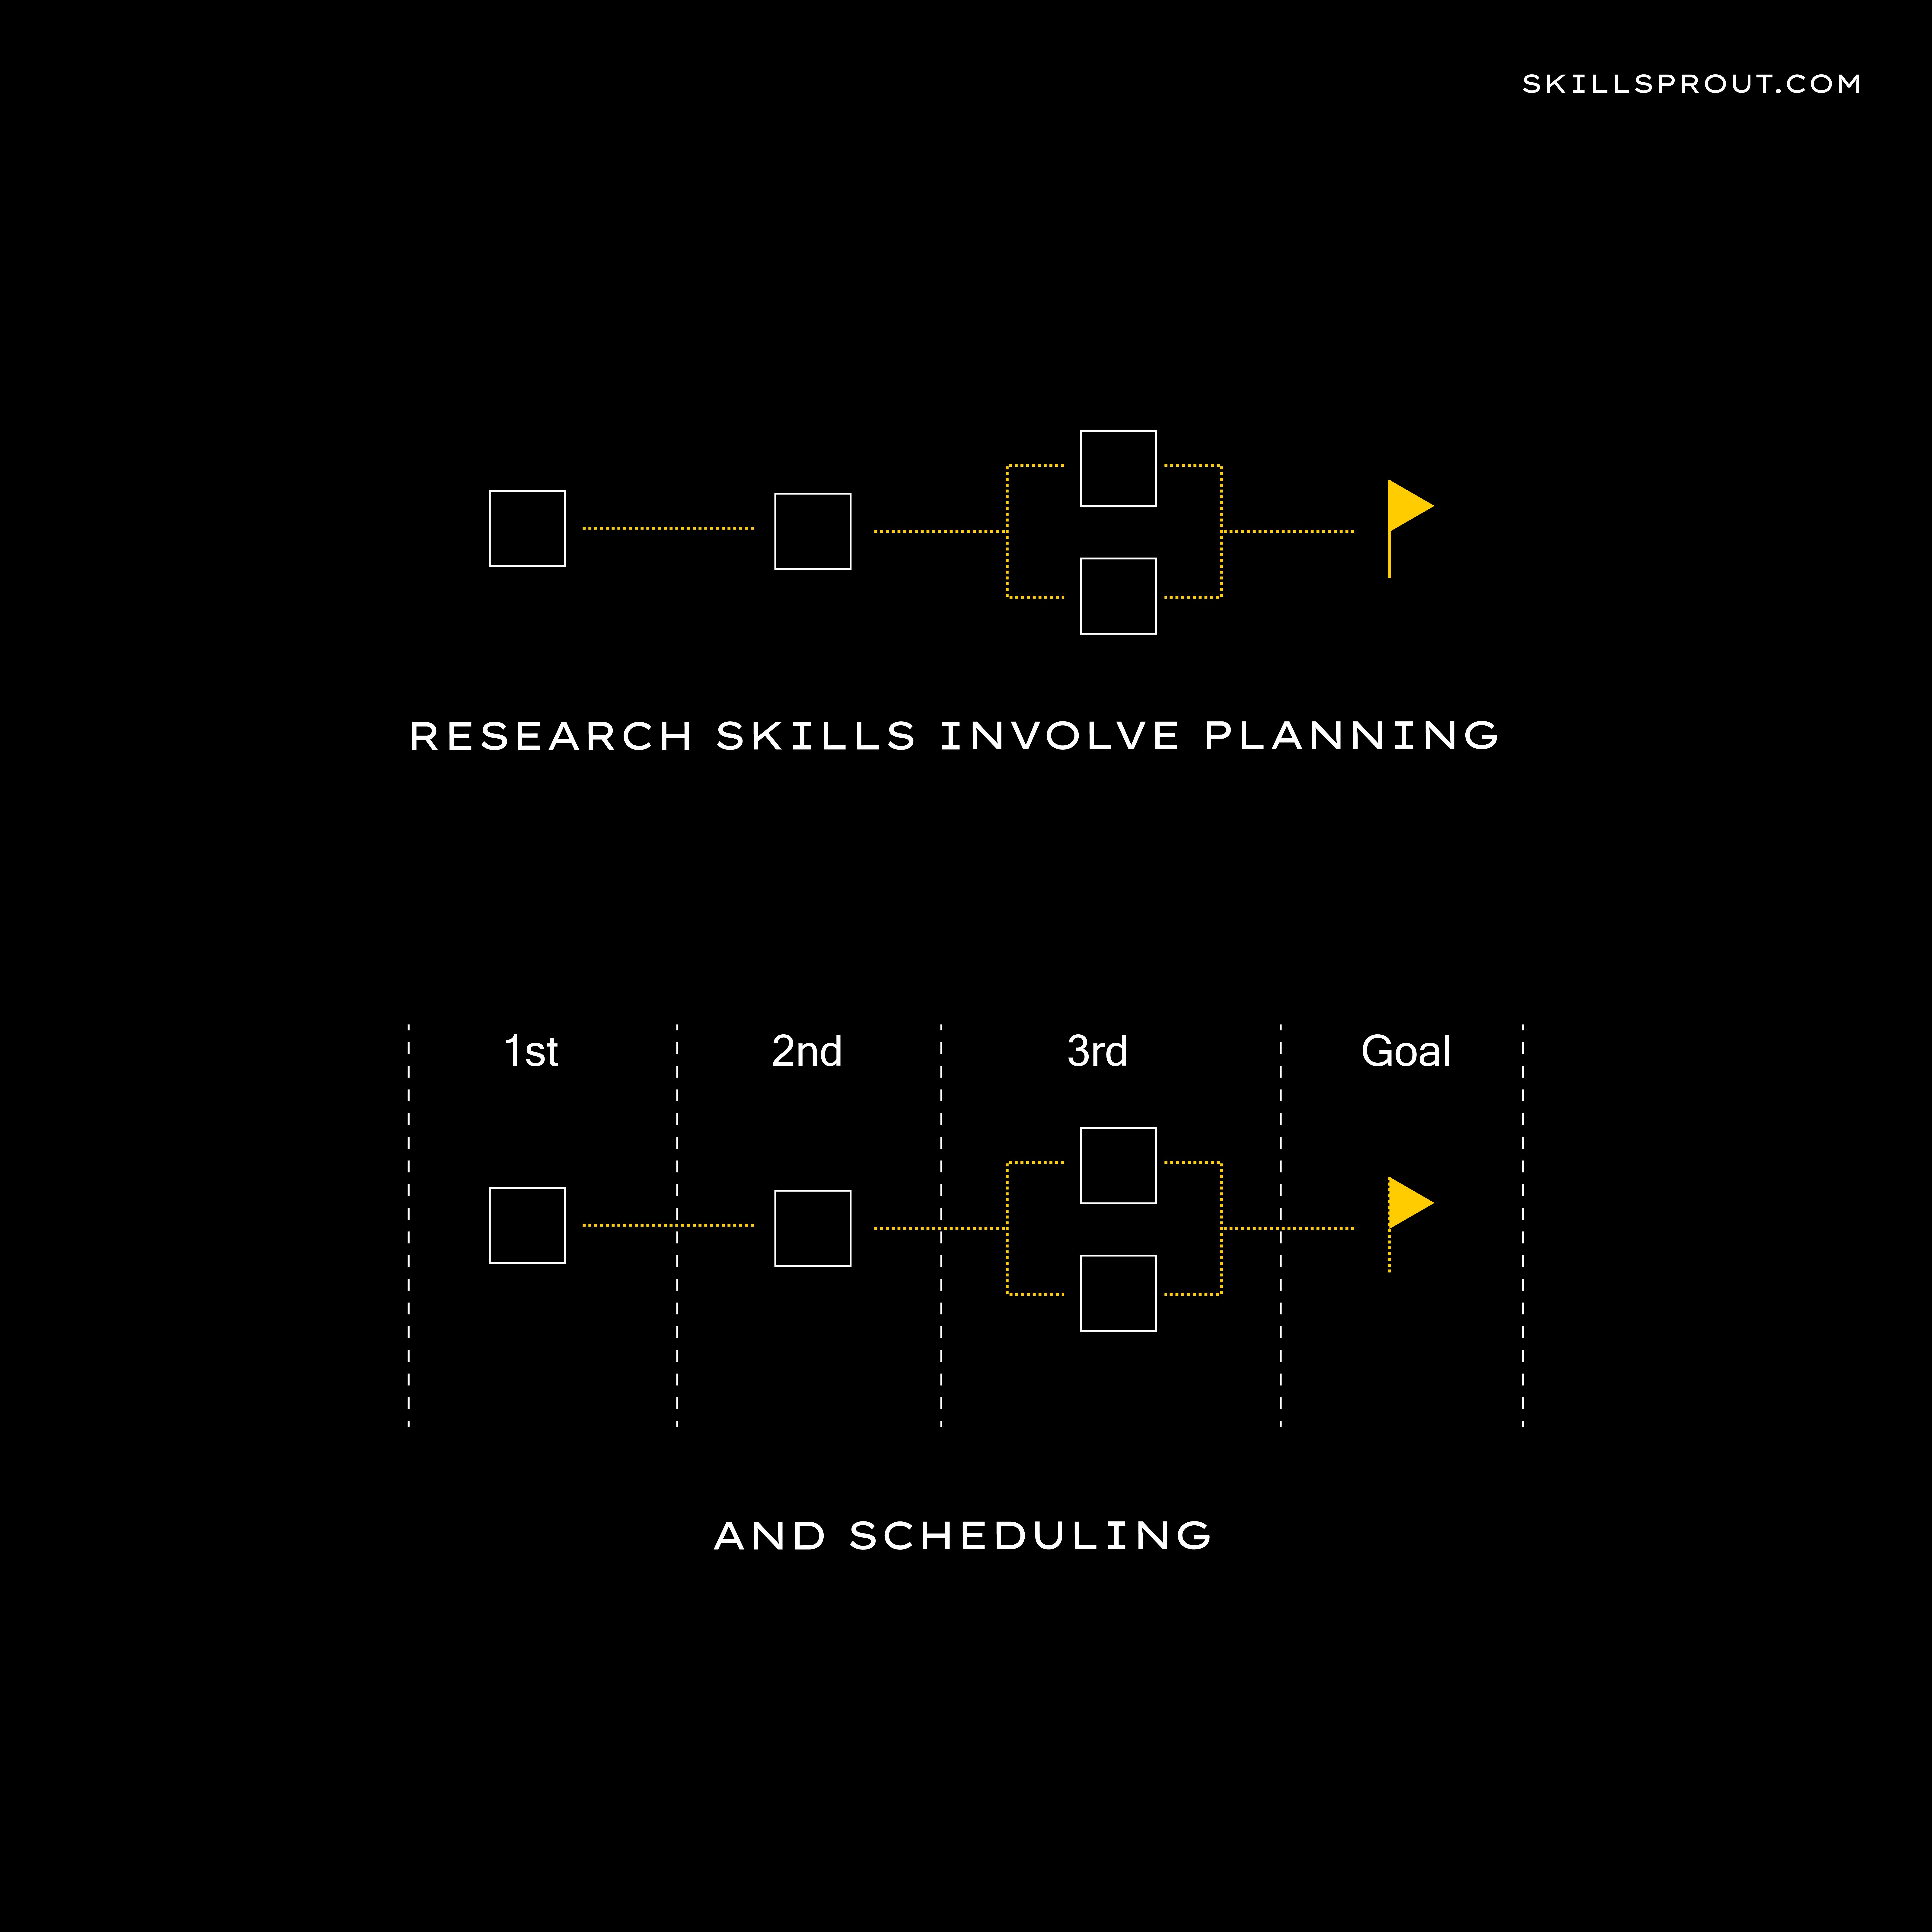 Research skills involve planning and scheduling.